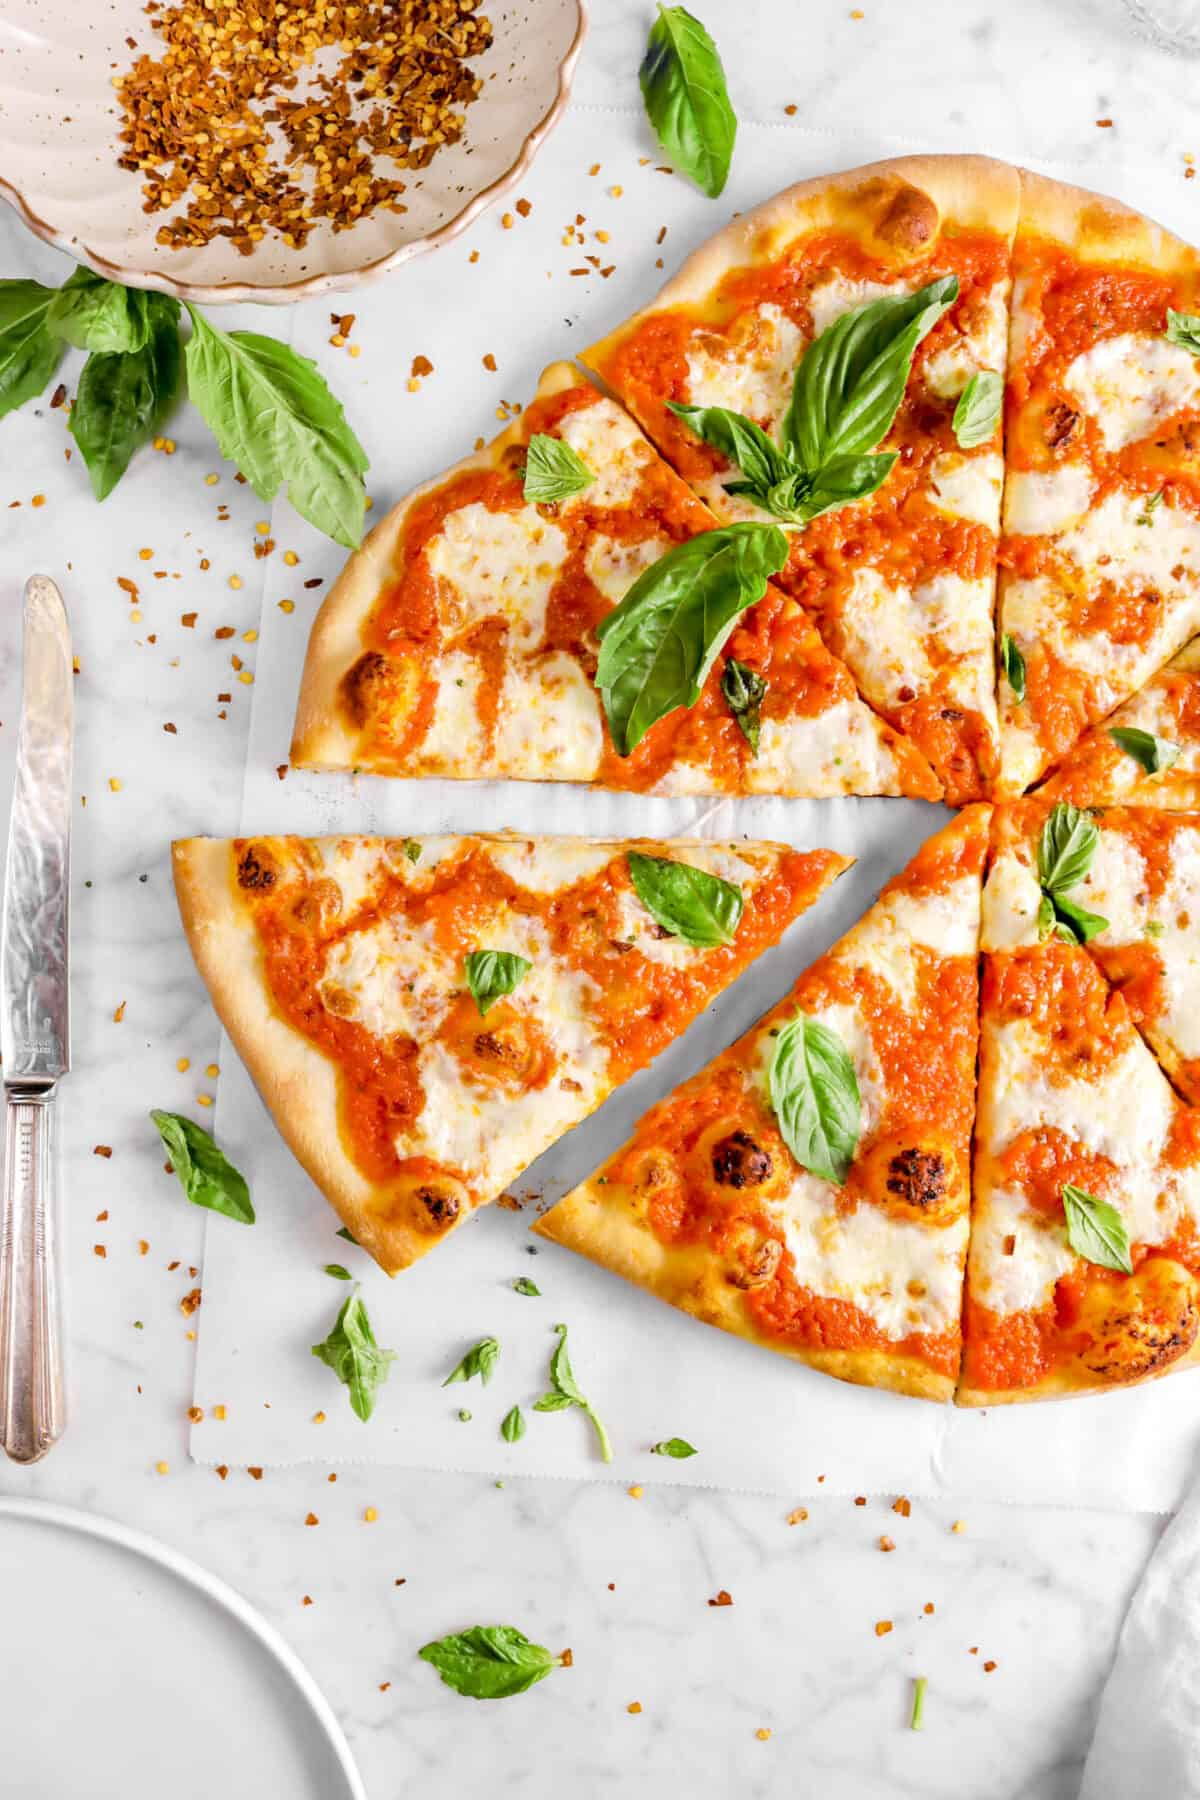 pizza slice pulled away from pizza on parchment with red pepper flakes, basil leaves, a knife, and plate